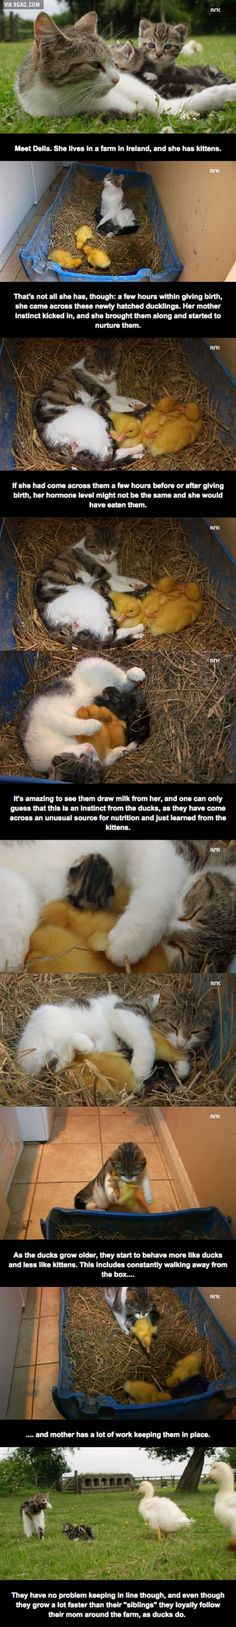 Della, the cat who adopted ducks